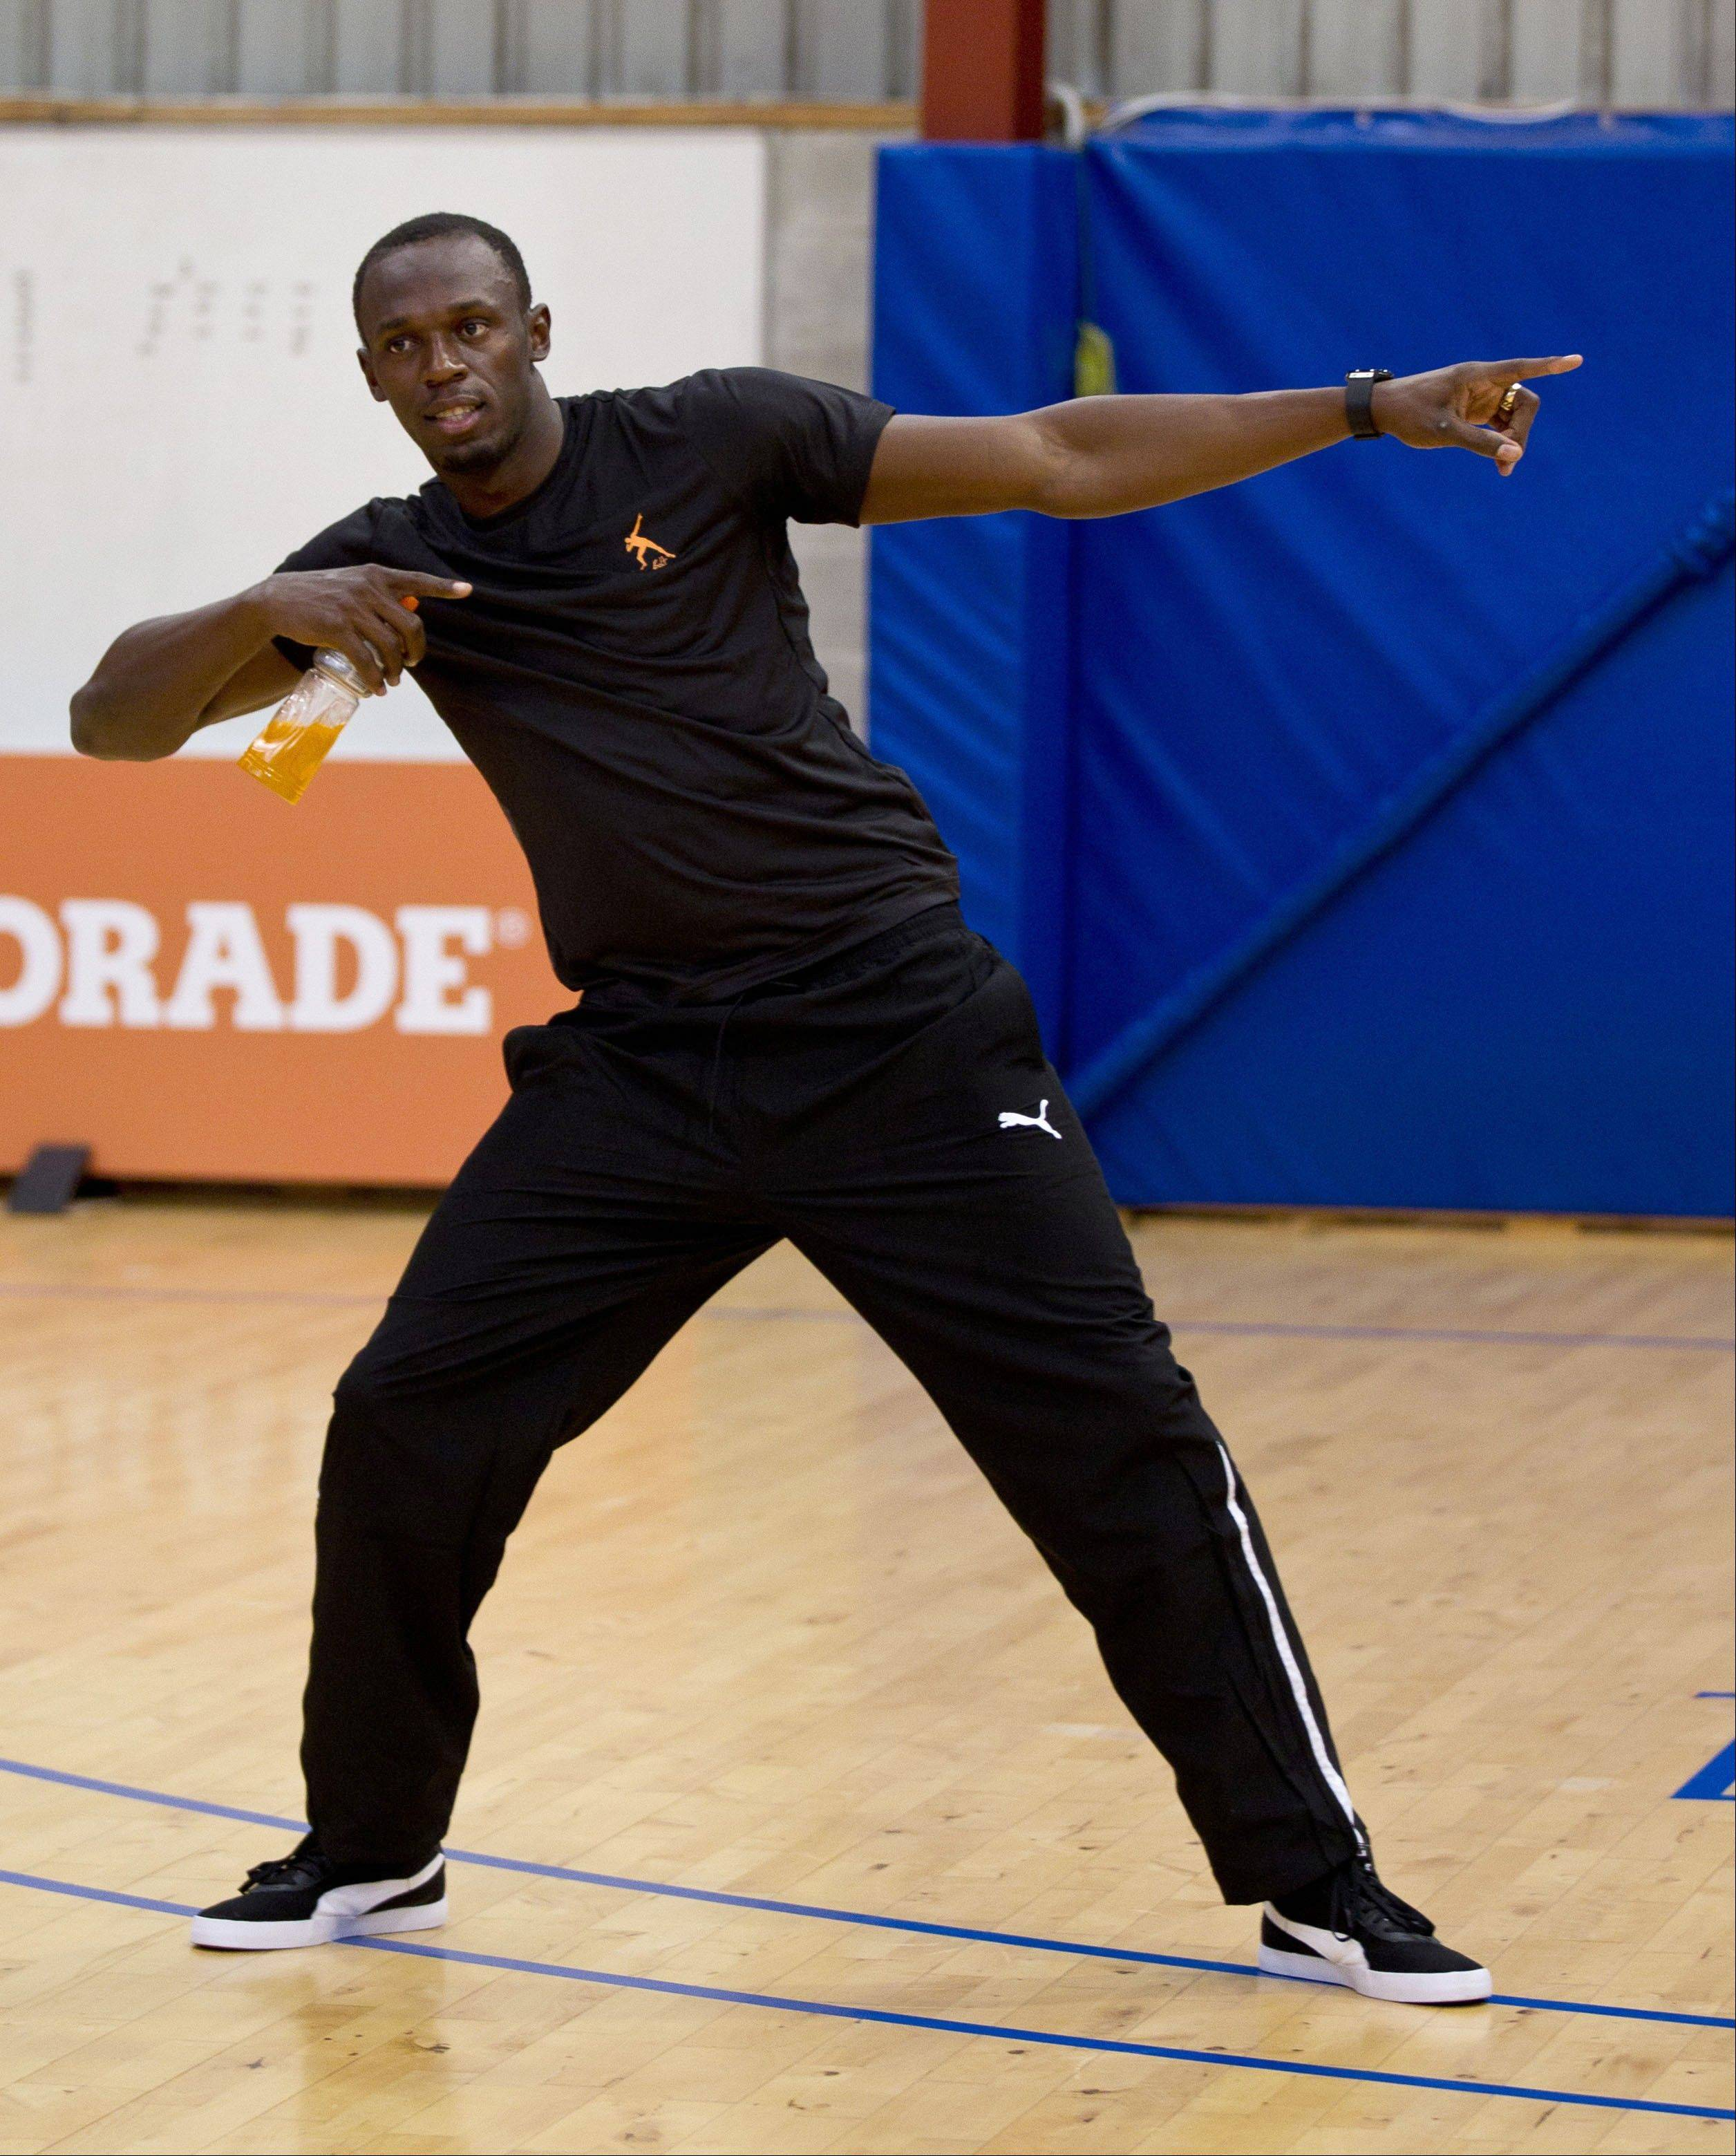 London Olympics champion Usain Bolt does a traditional challenge dance during the Breakers' basketball team event at their training facility at Mairangi Bay in Auckland, New Zealand, Monday, Oct 8, 2012. The legendary Jamaican sprinter is making a short visit to New Zealand after holidaying in Australia.